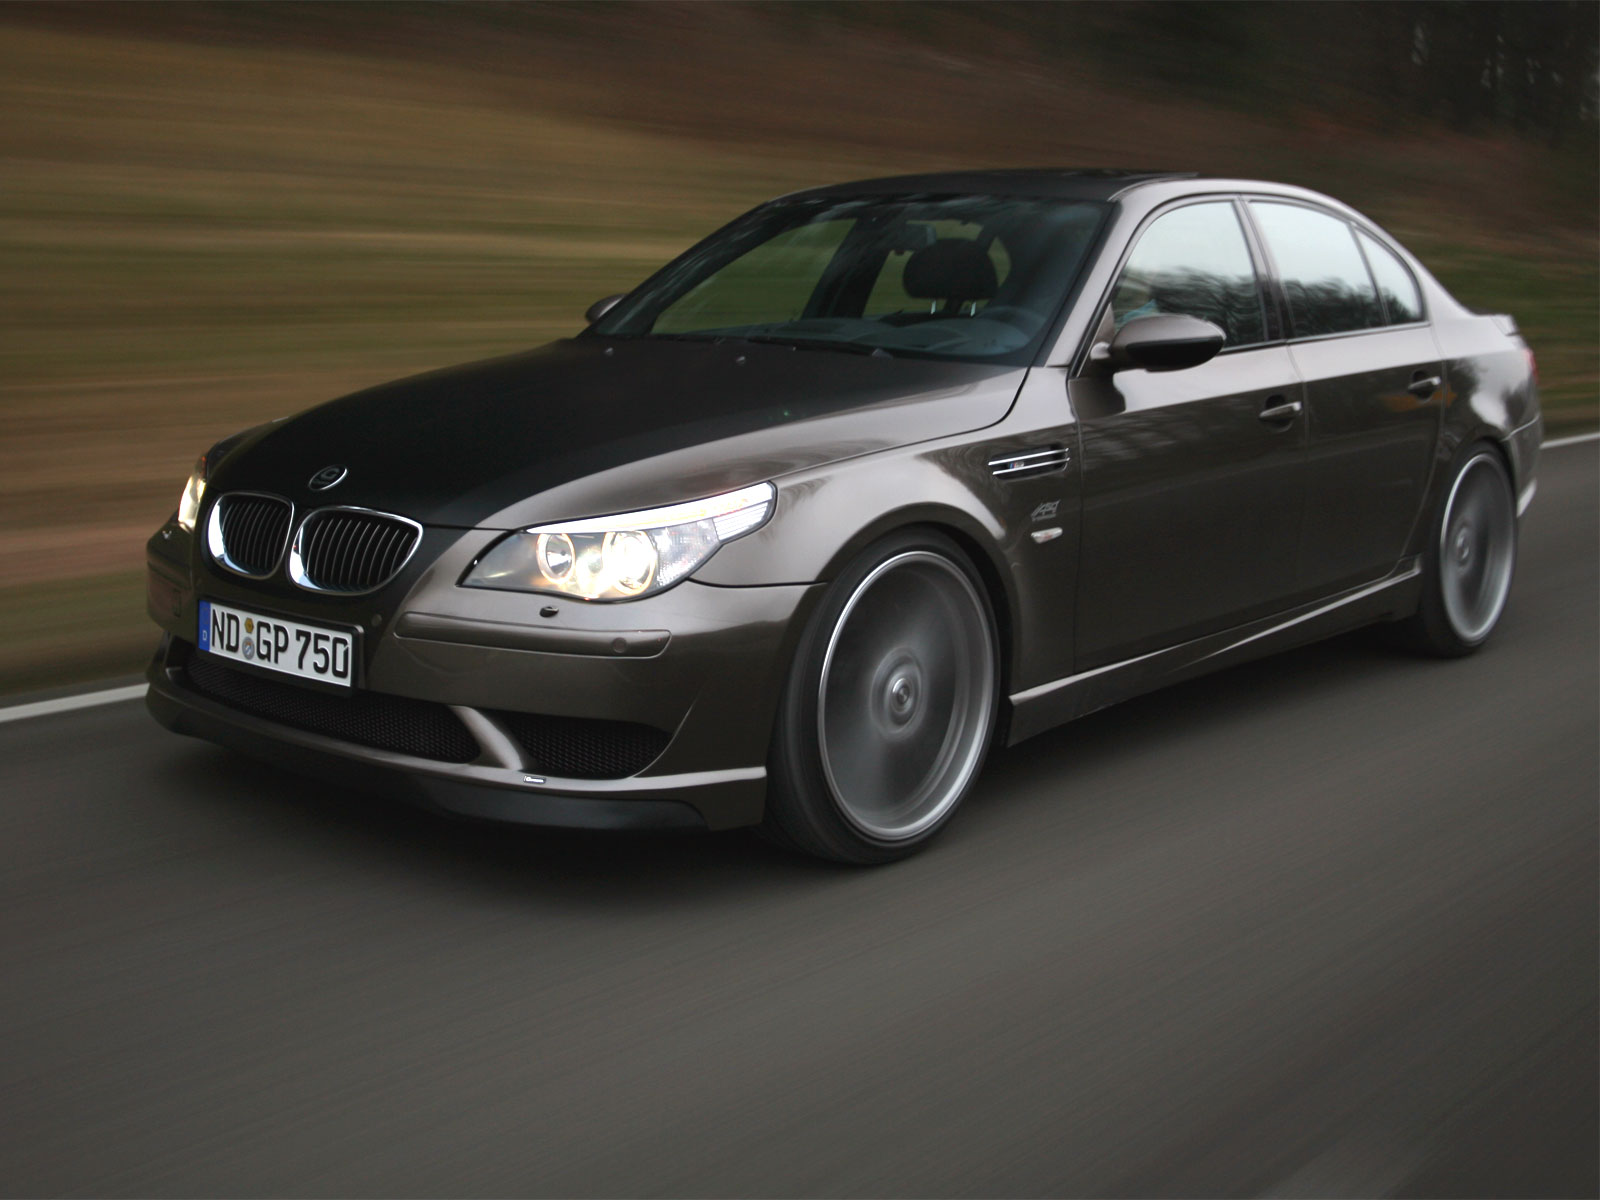 Black Bmw M5 Wallpaper 4921 Hd Wallpapers in Cars   Imagescicom 1600x1200